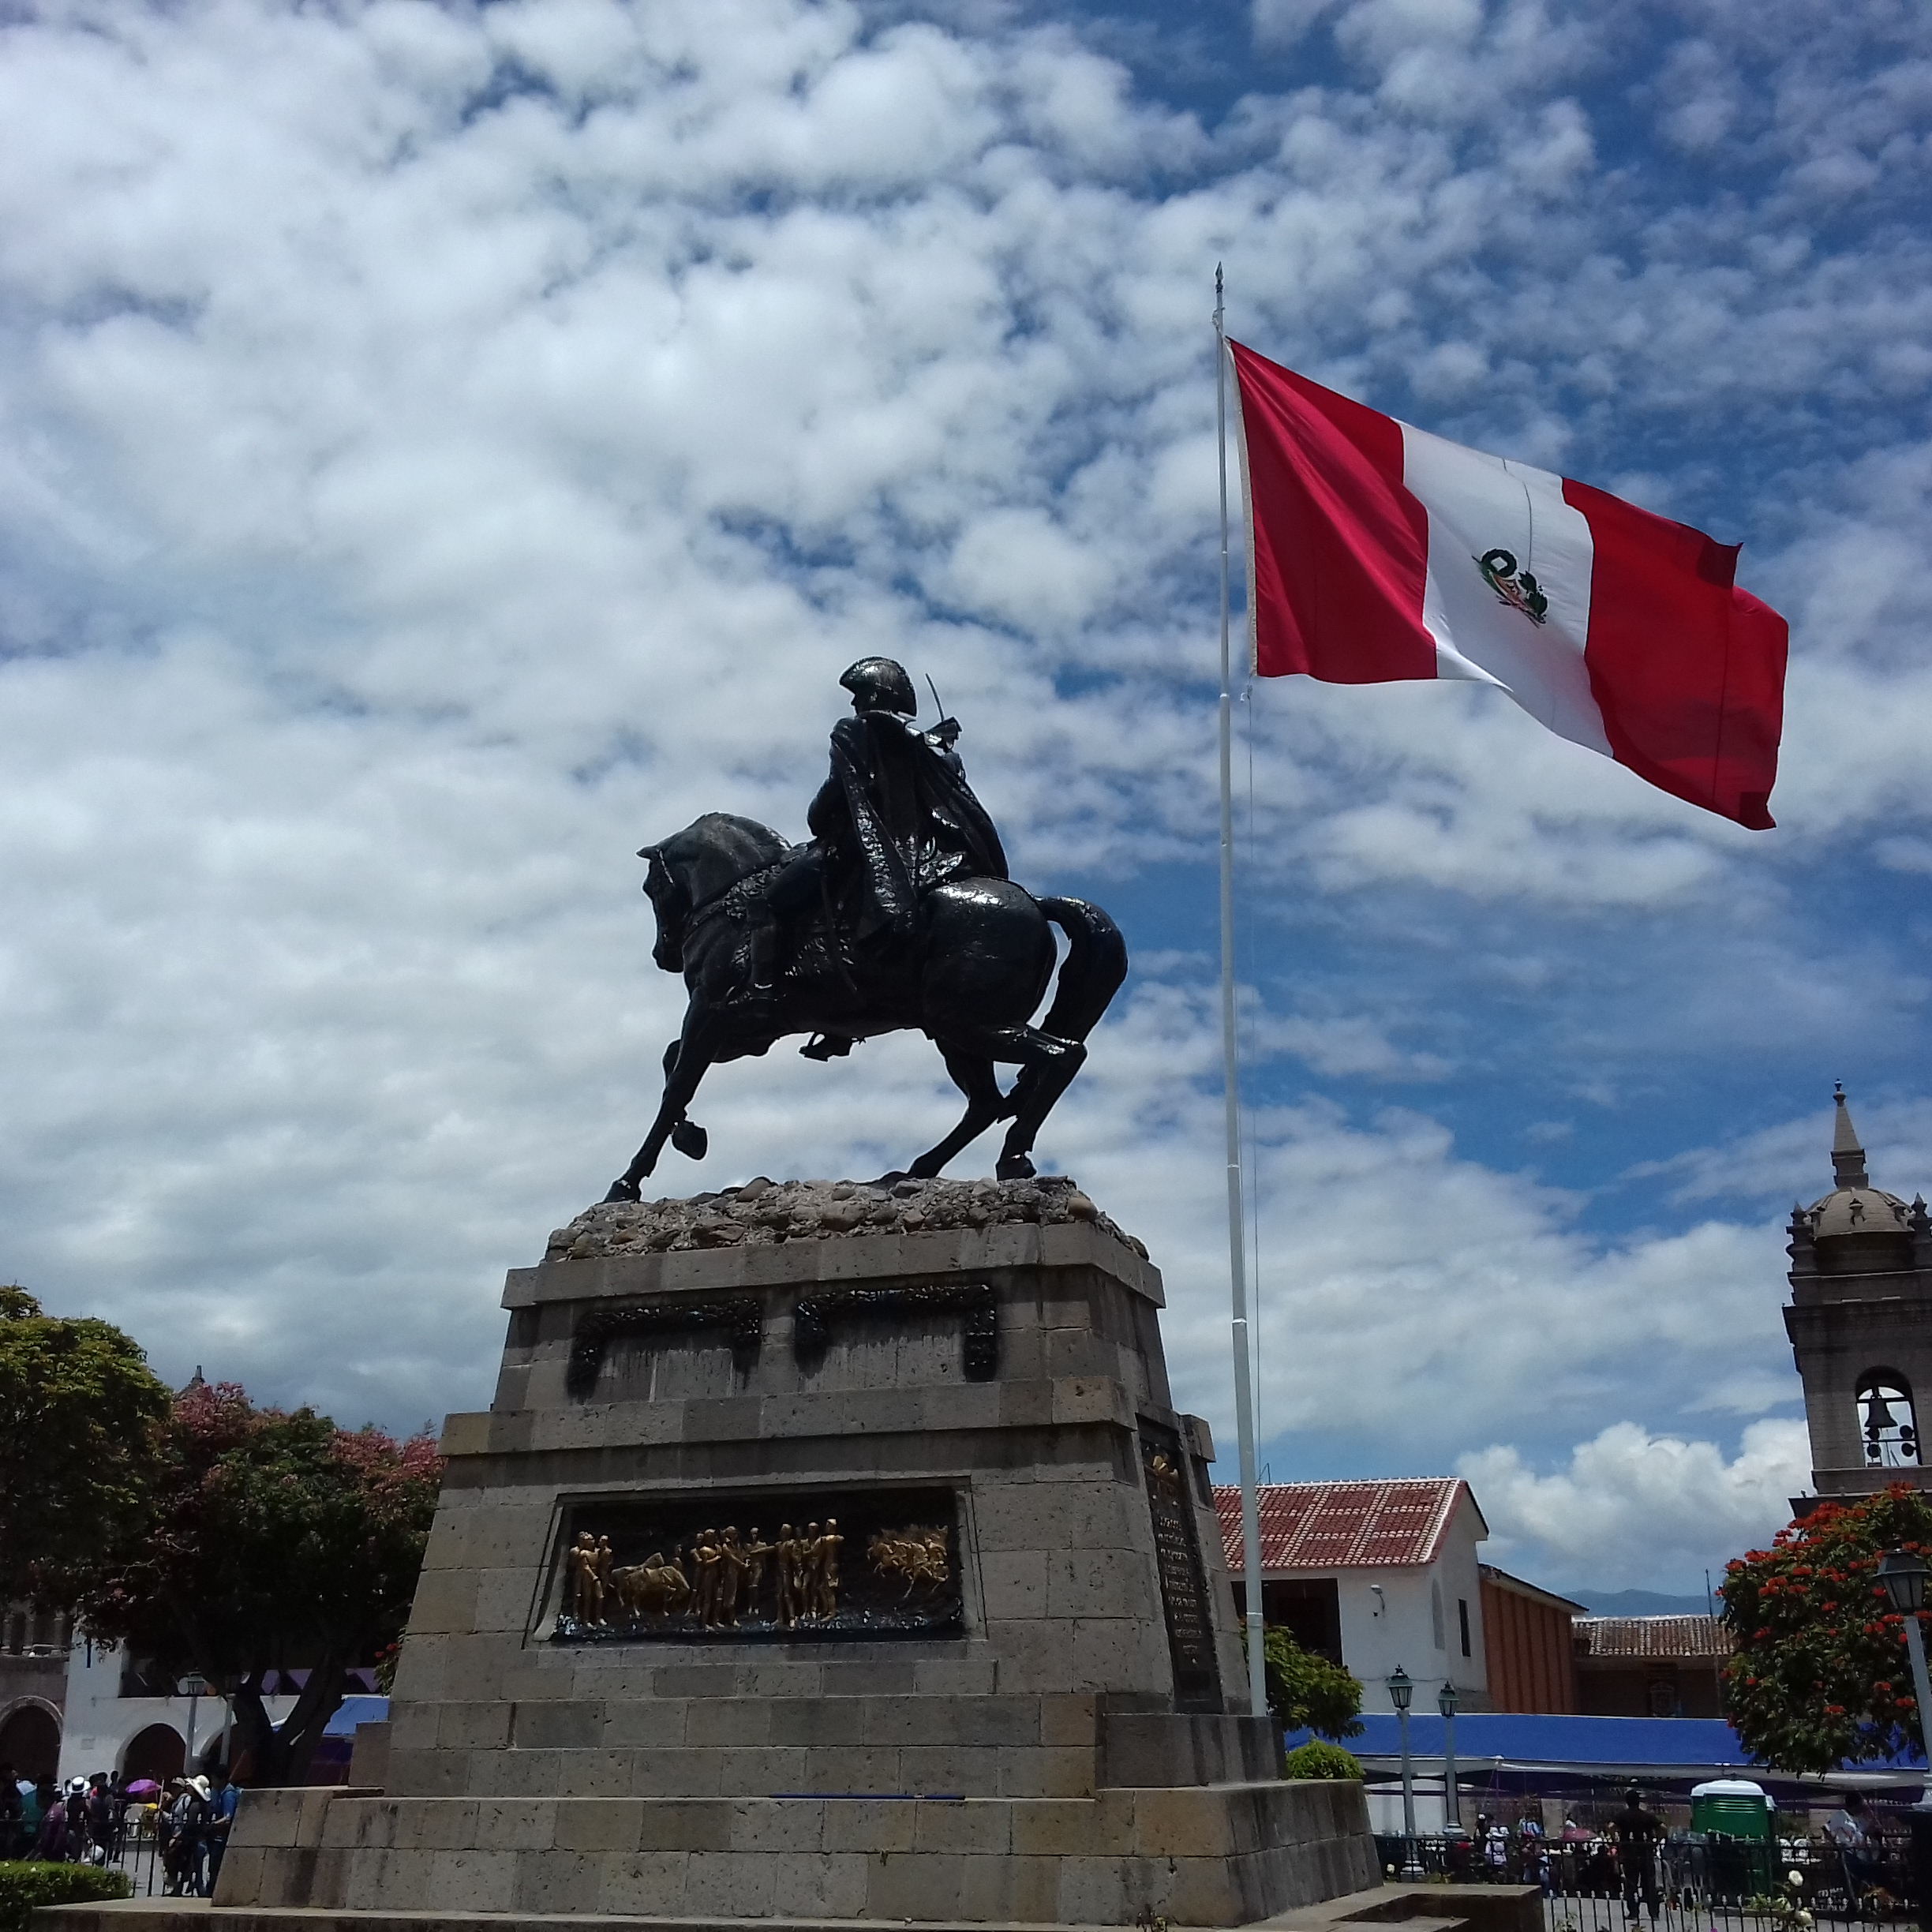 astatue of a man on a horse and a Peruvian flag